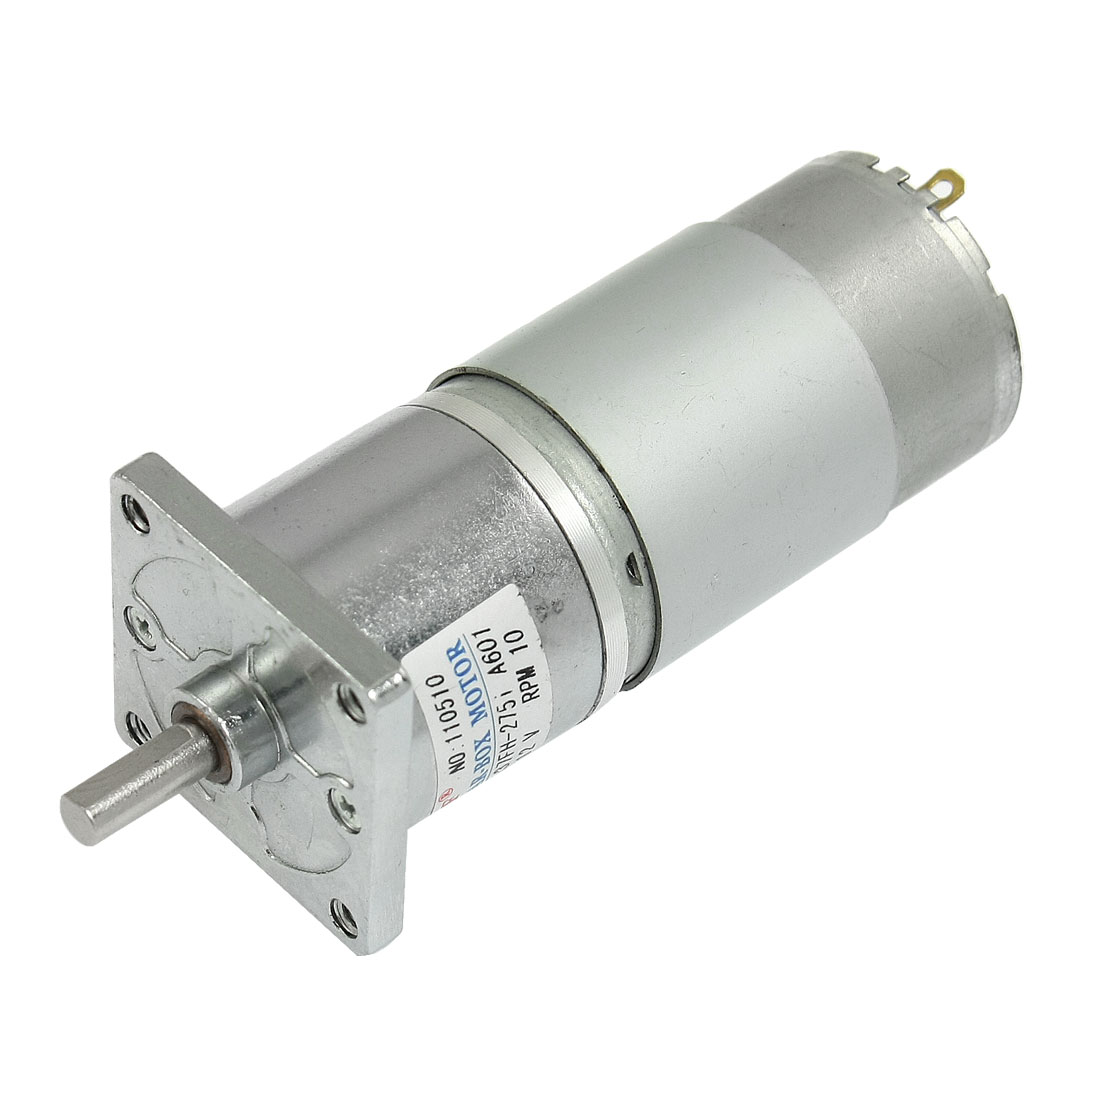 DC 12V 150mA 10RPM 20.9Kg-cm High Torque Permanent Magnetic DC Gear Motor